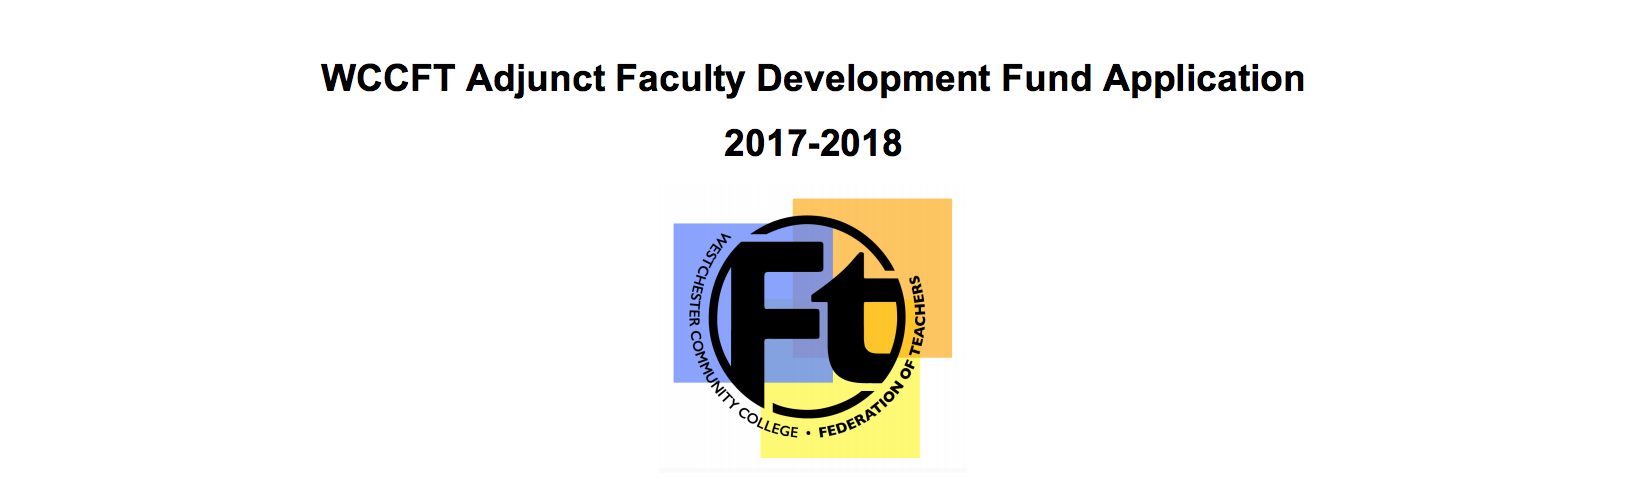 Part-Time Faculty Development Fund Form